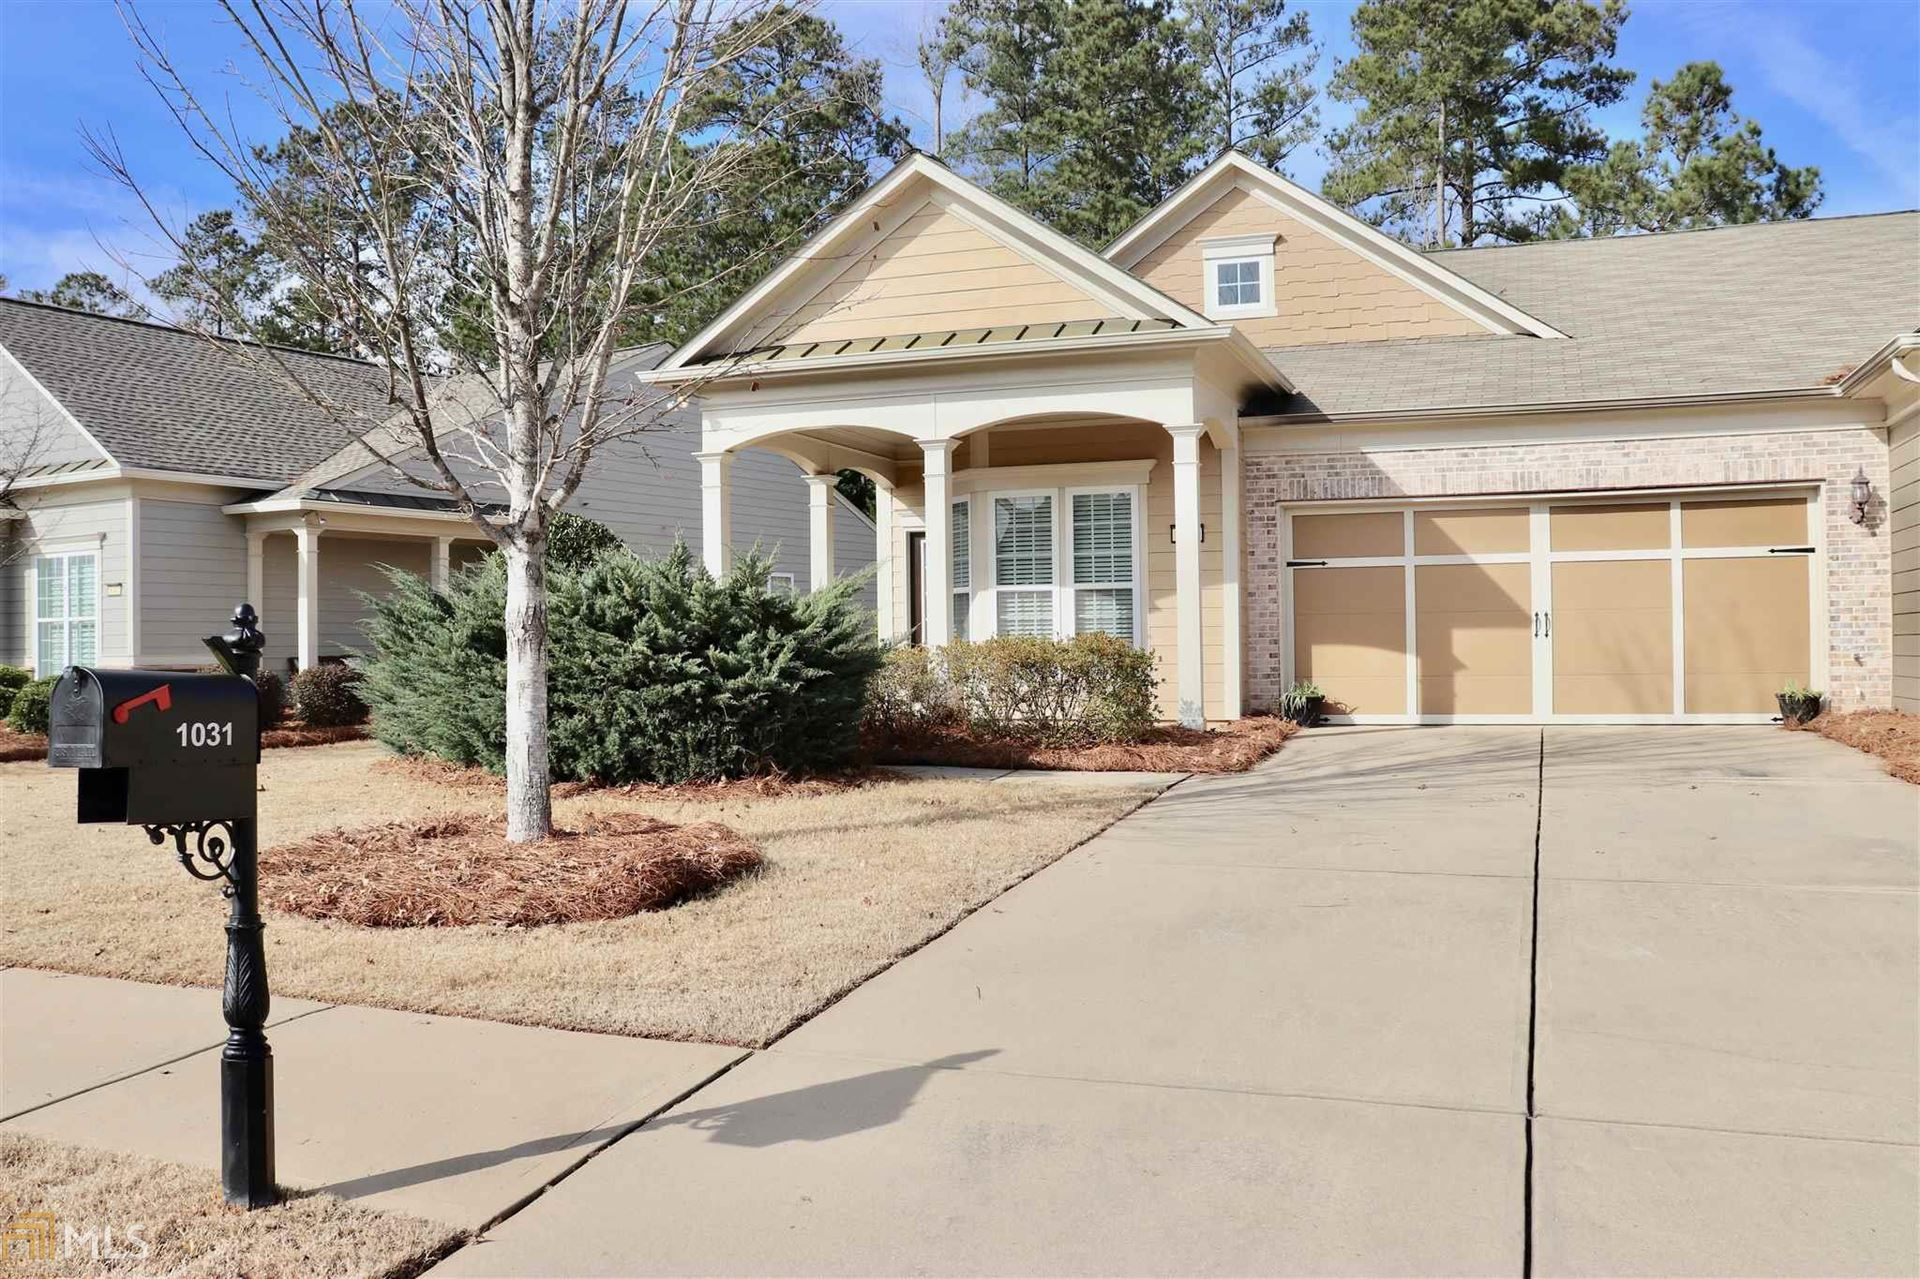 1031 Summer Station St, Greensboro, GA 30642 - MLS#: 8911163